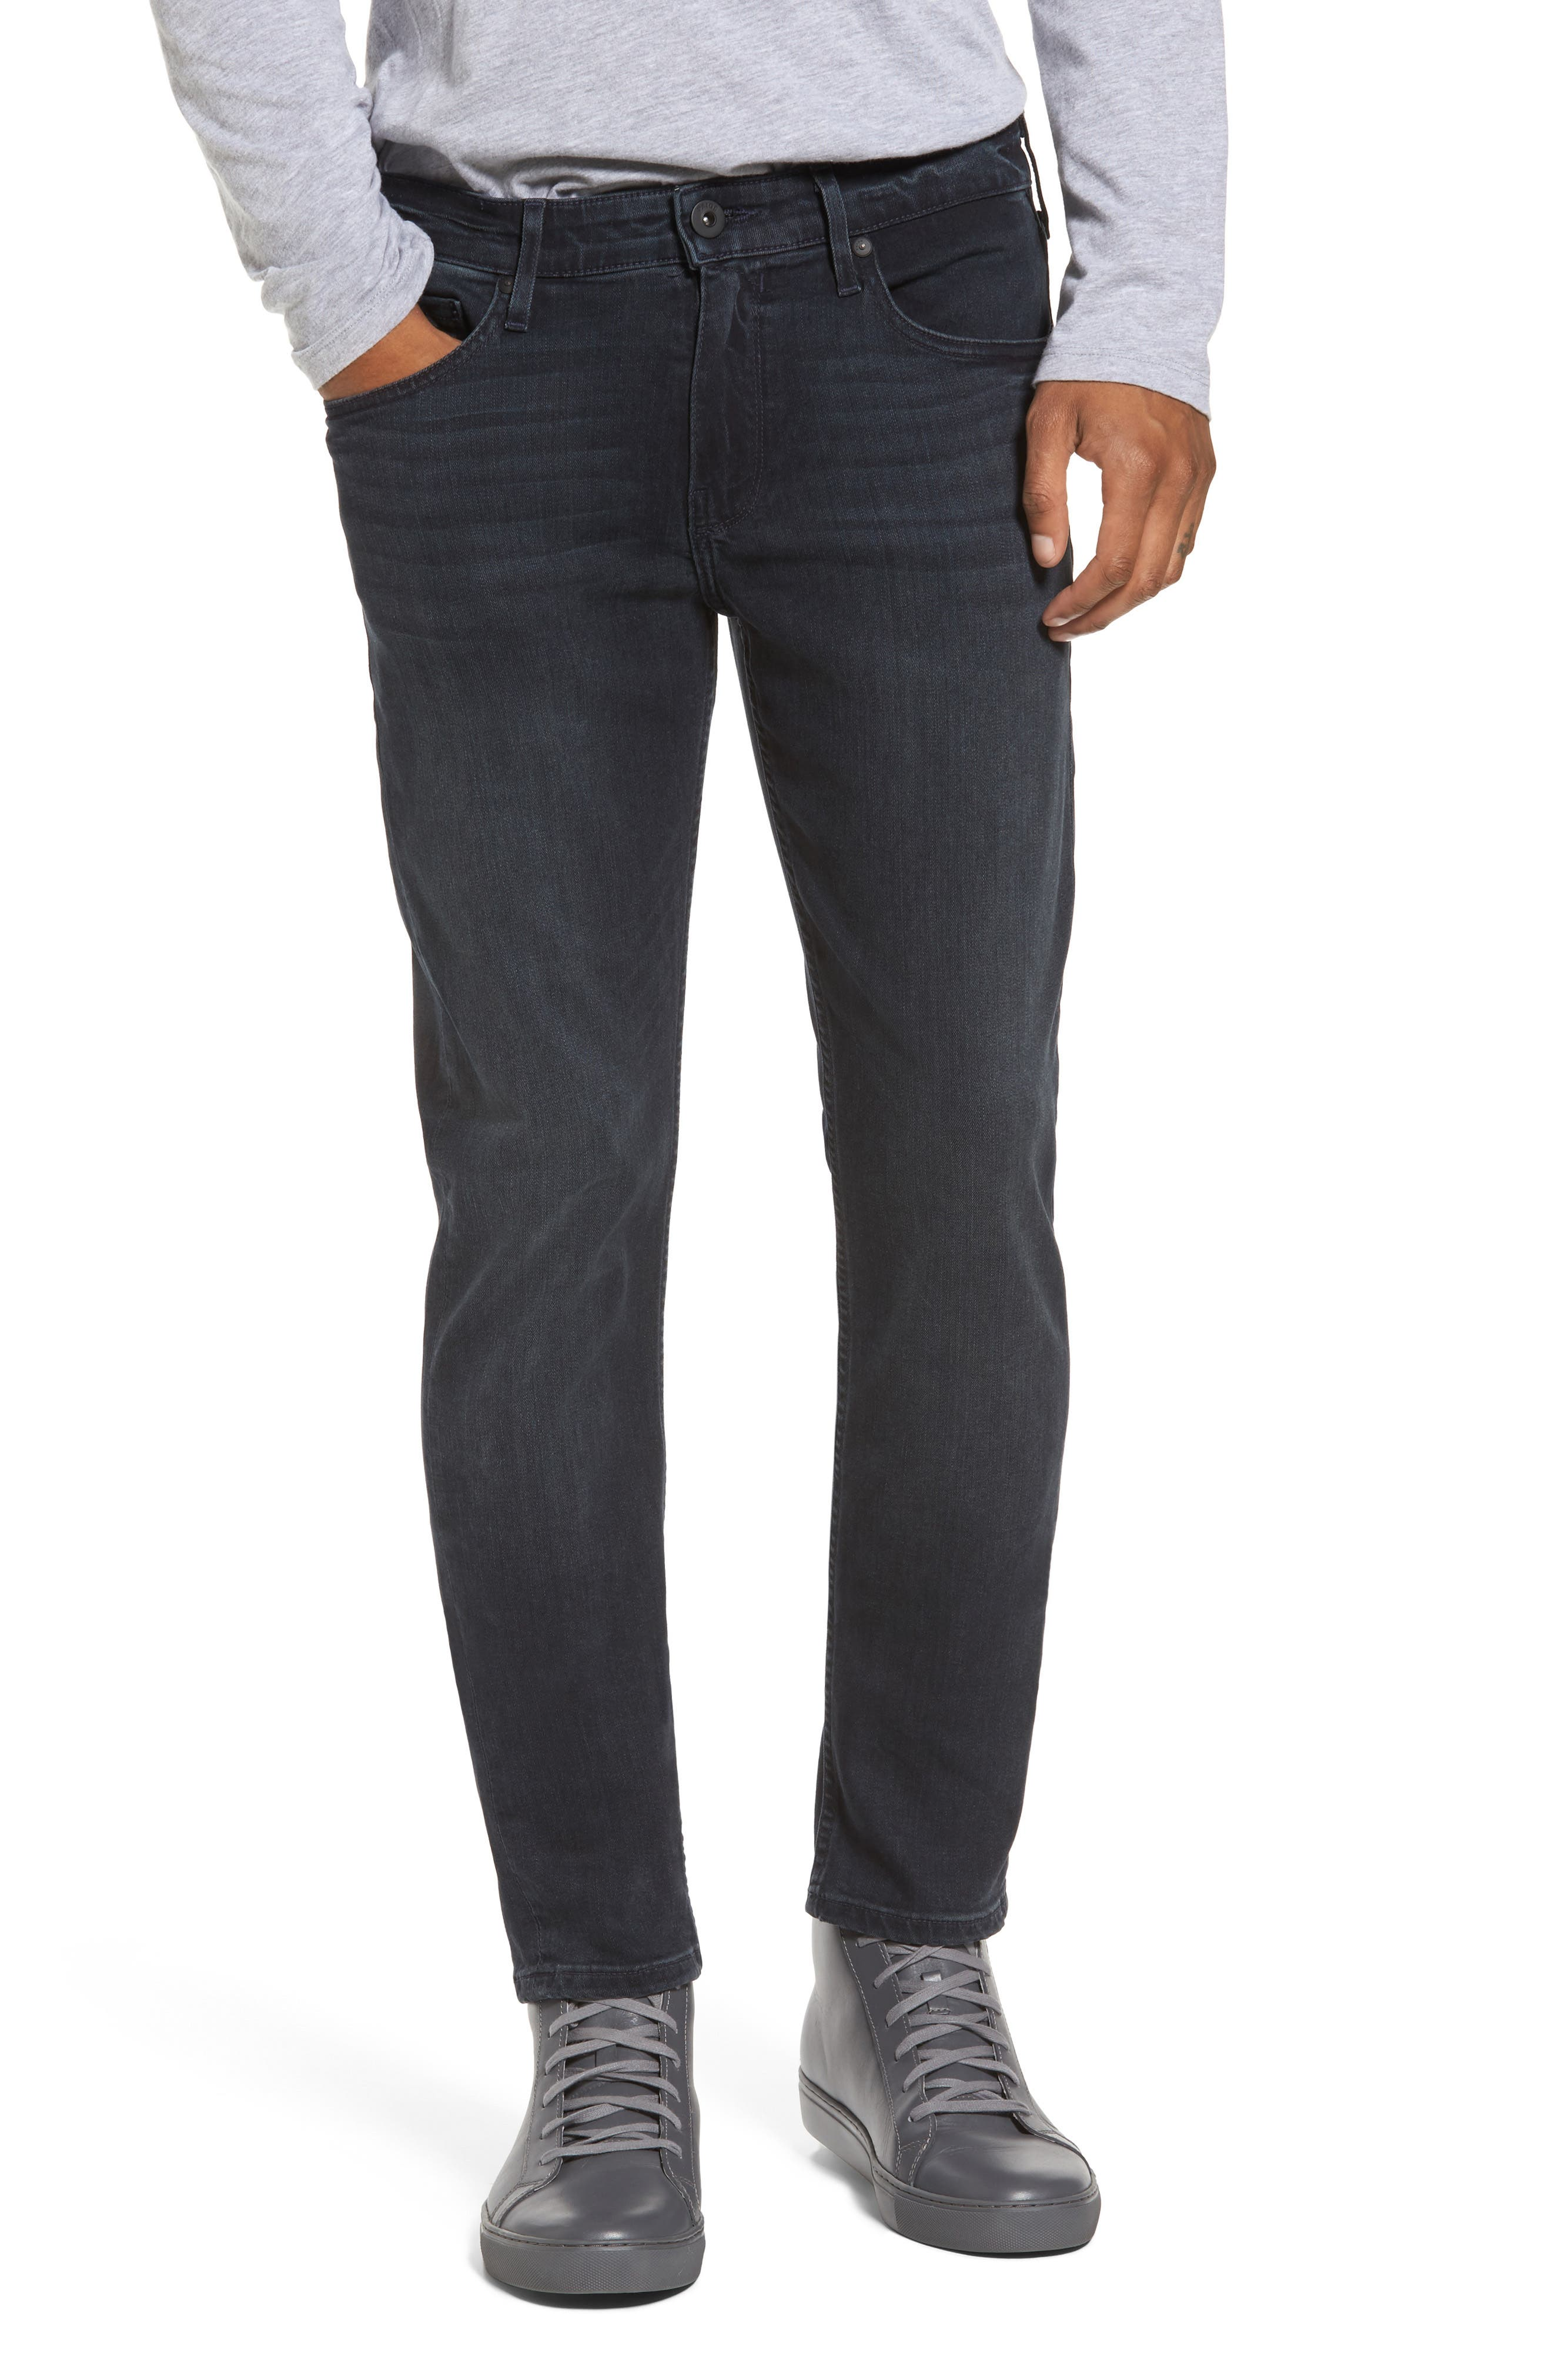 Transcend - Croft Skinny Fit Jeans,                             Main thumbnail 1, color,                             BECKETT